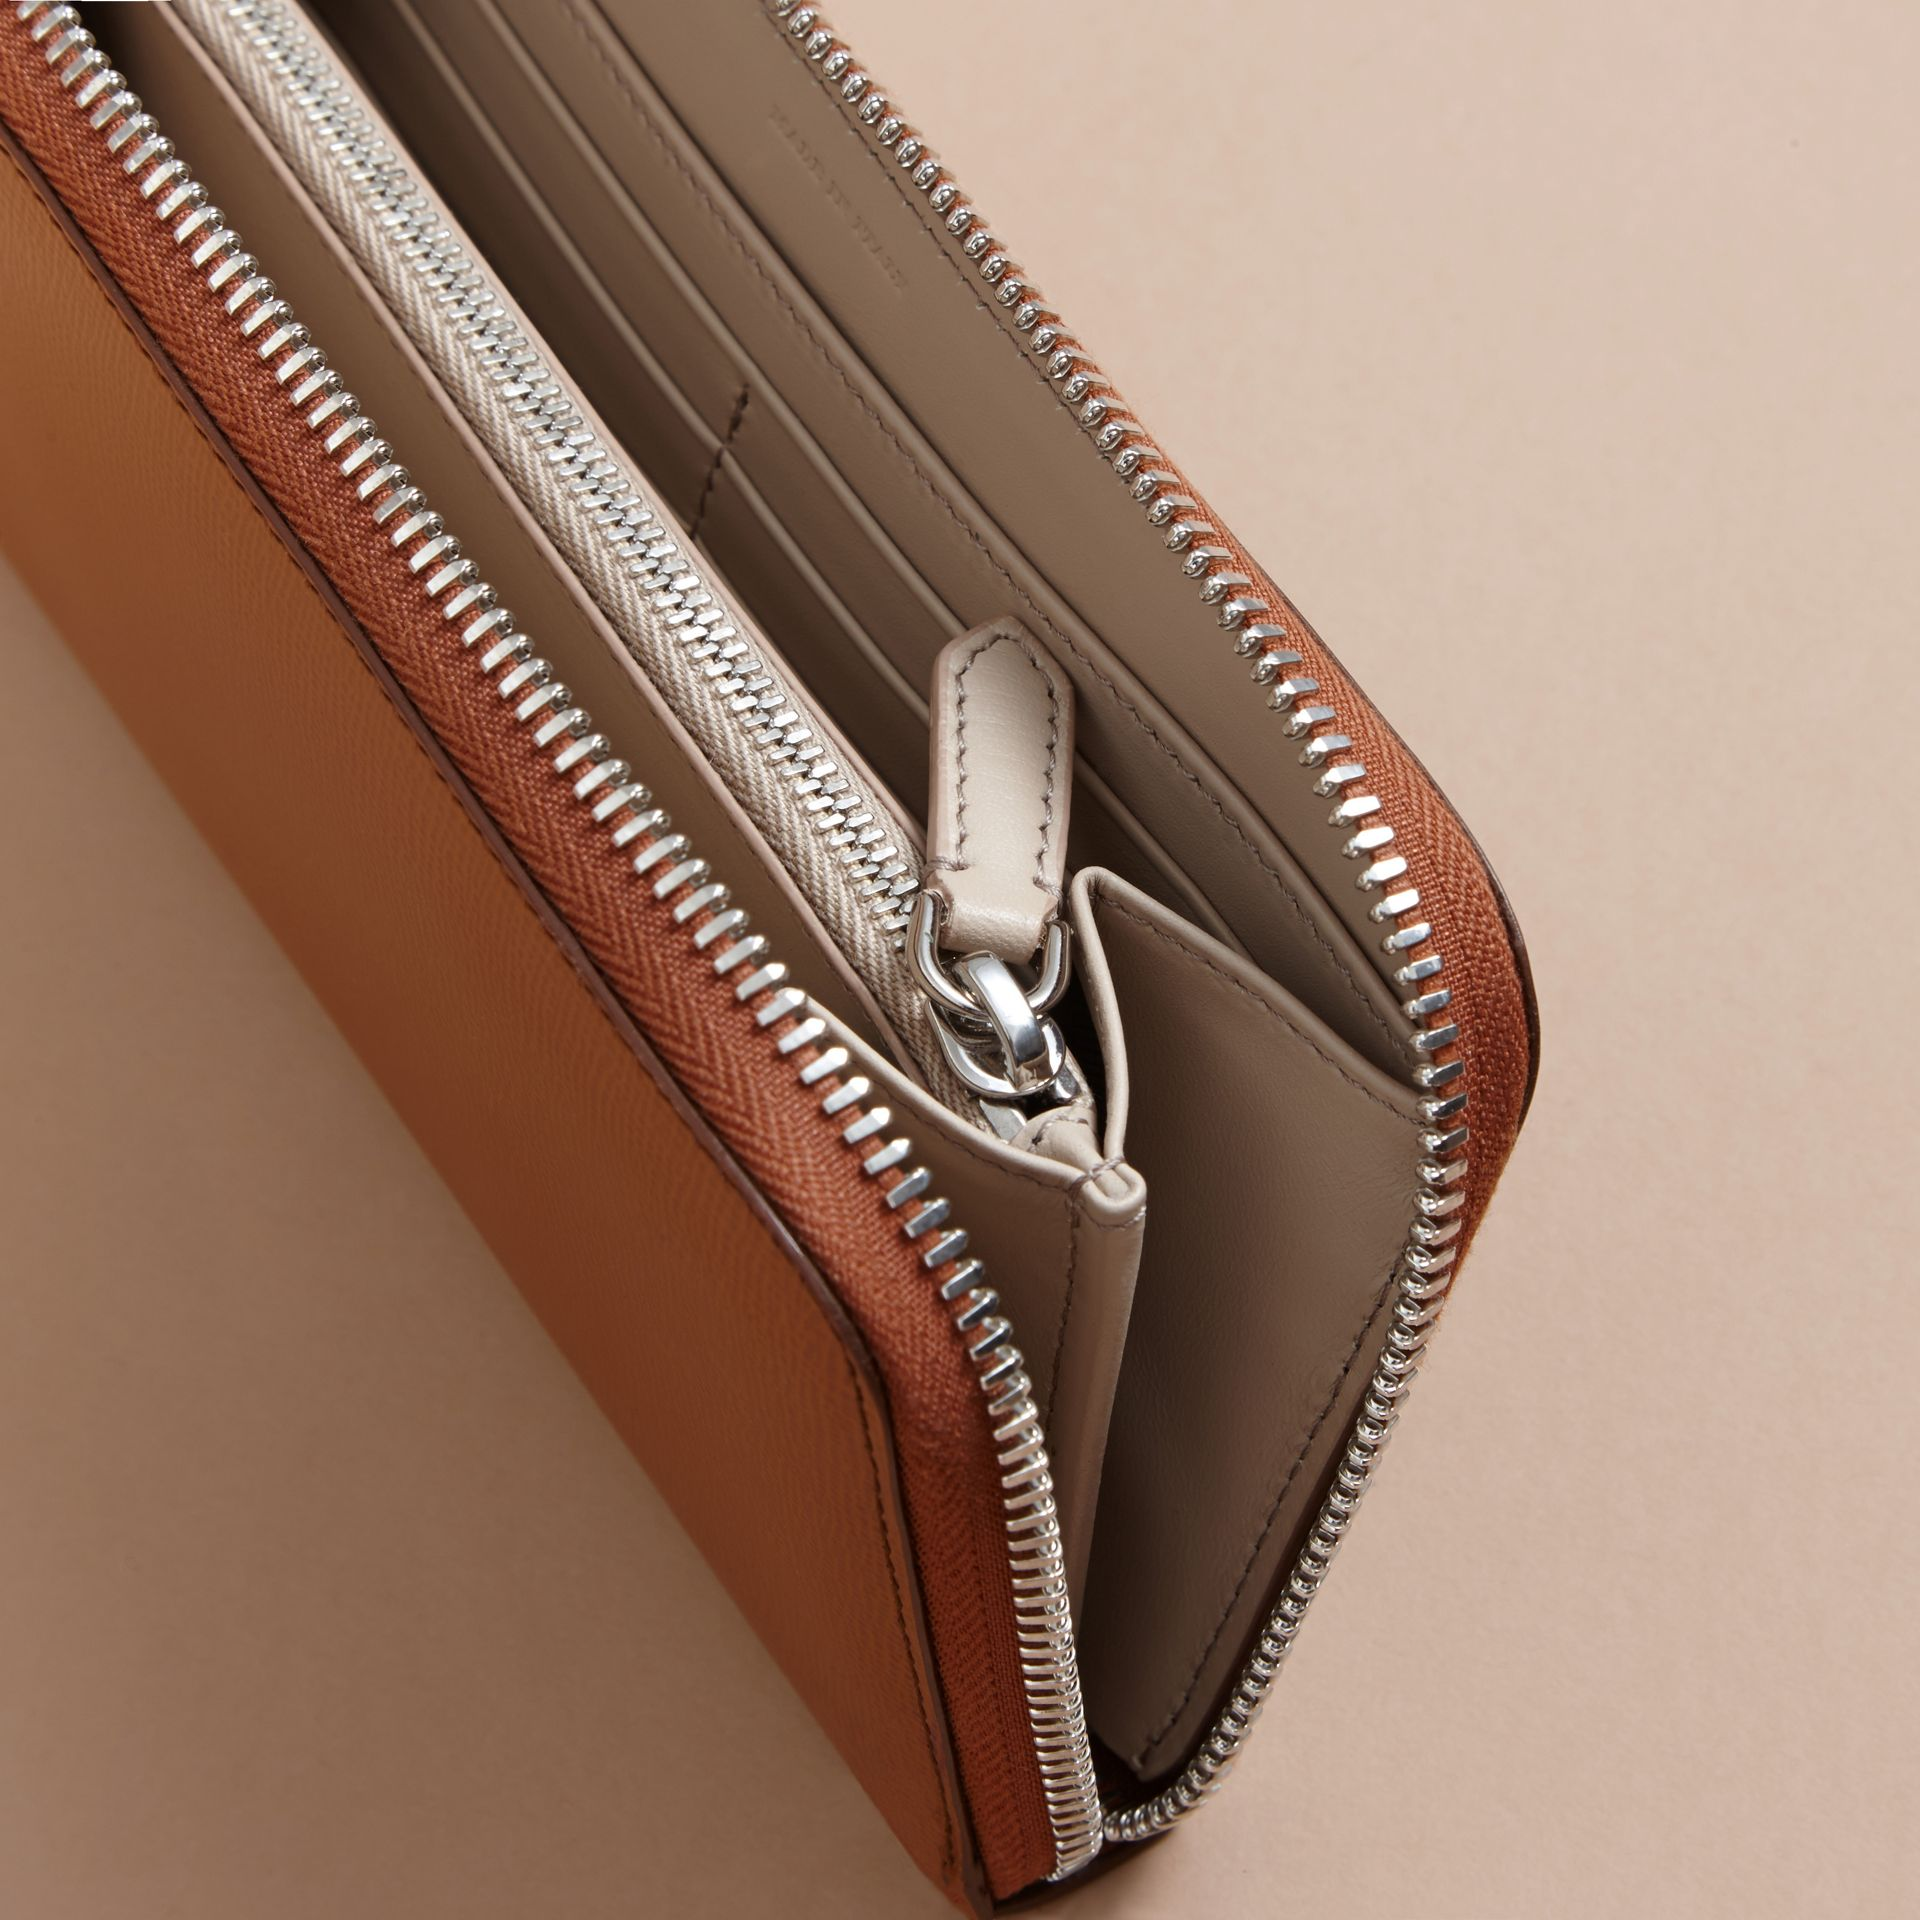 London Leather Ziparound Wallet in Tan - Men | Burberry - gallery image 5